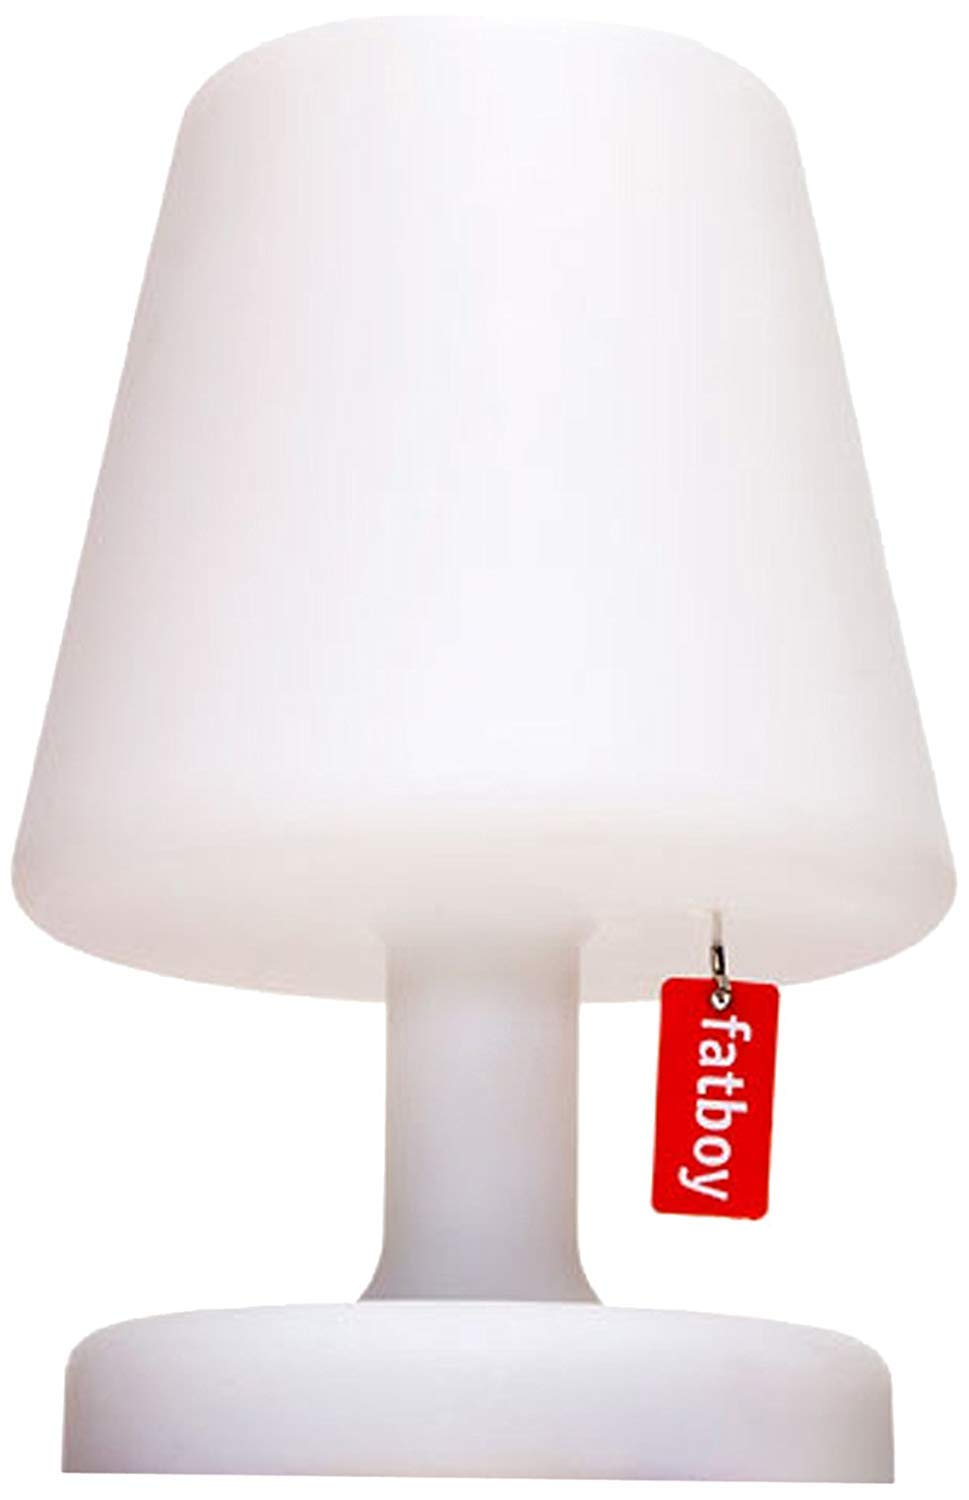 Rechargeable Cordless and Portable LED Light Fatboy Edison the Petit Lamp